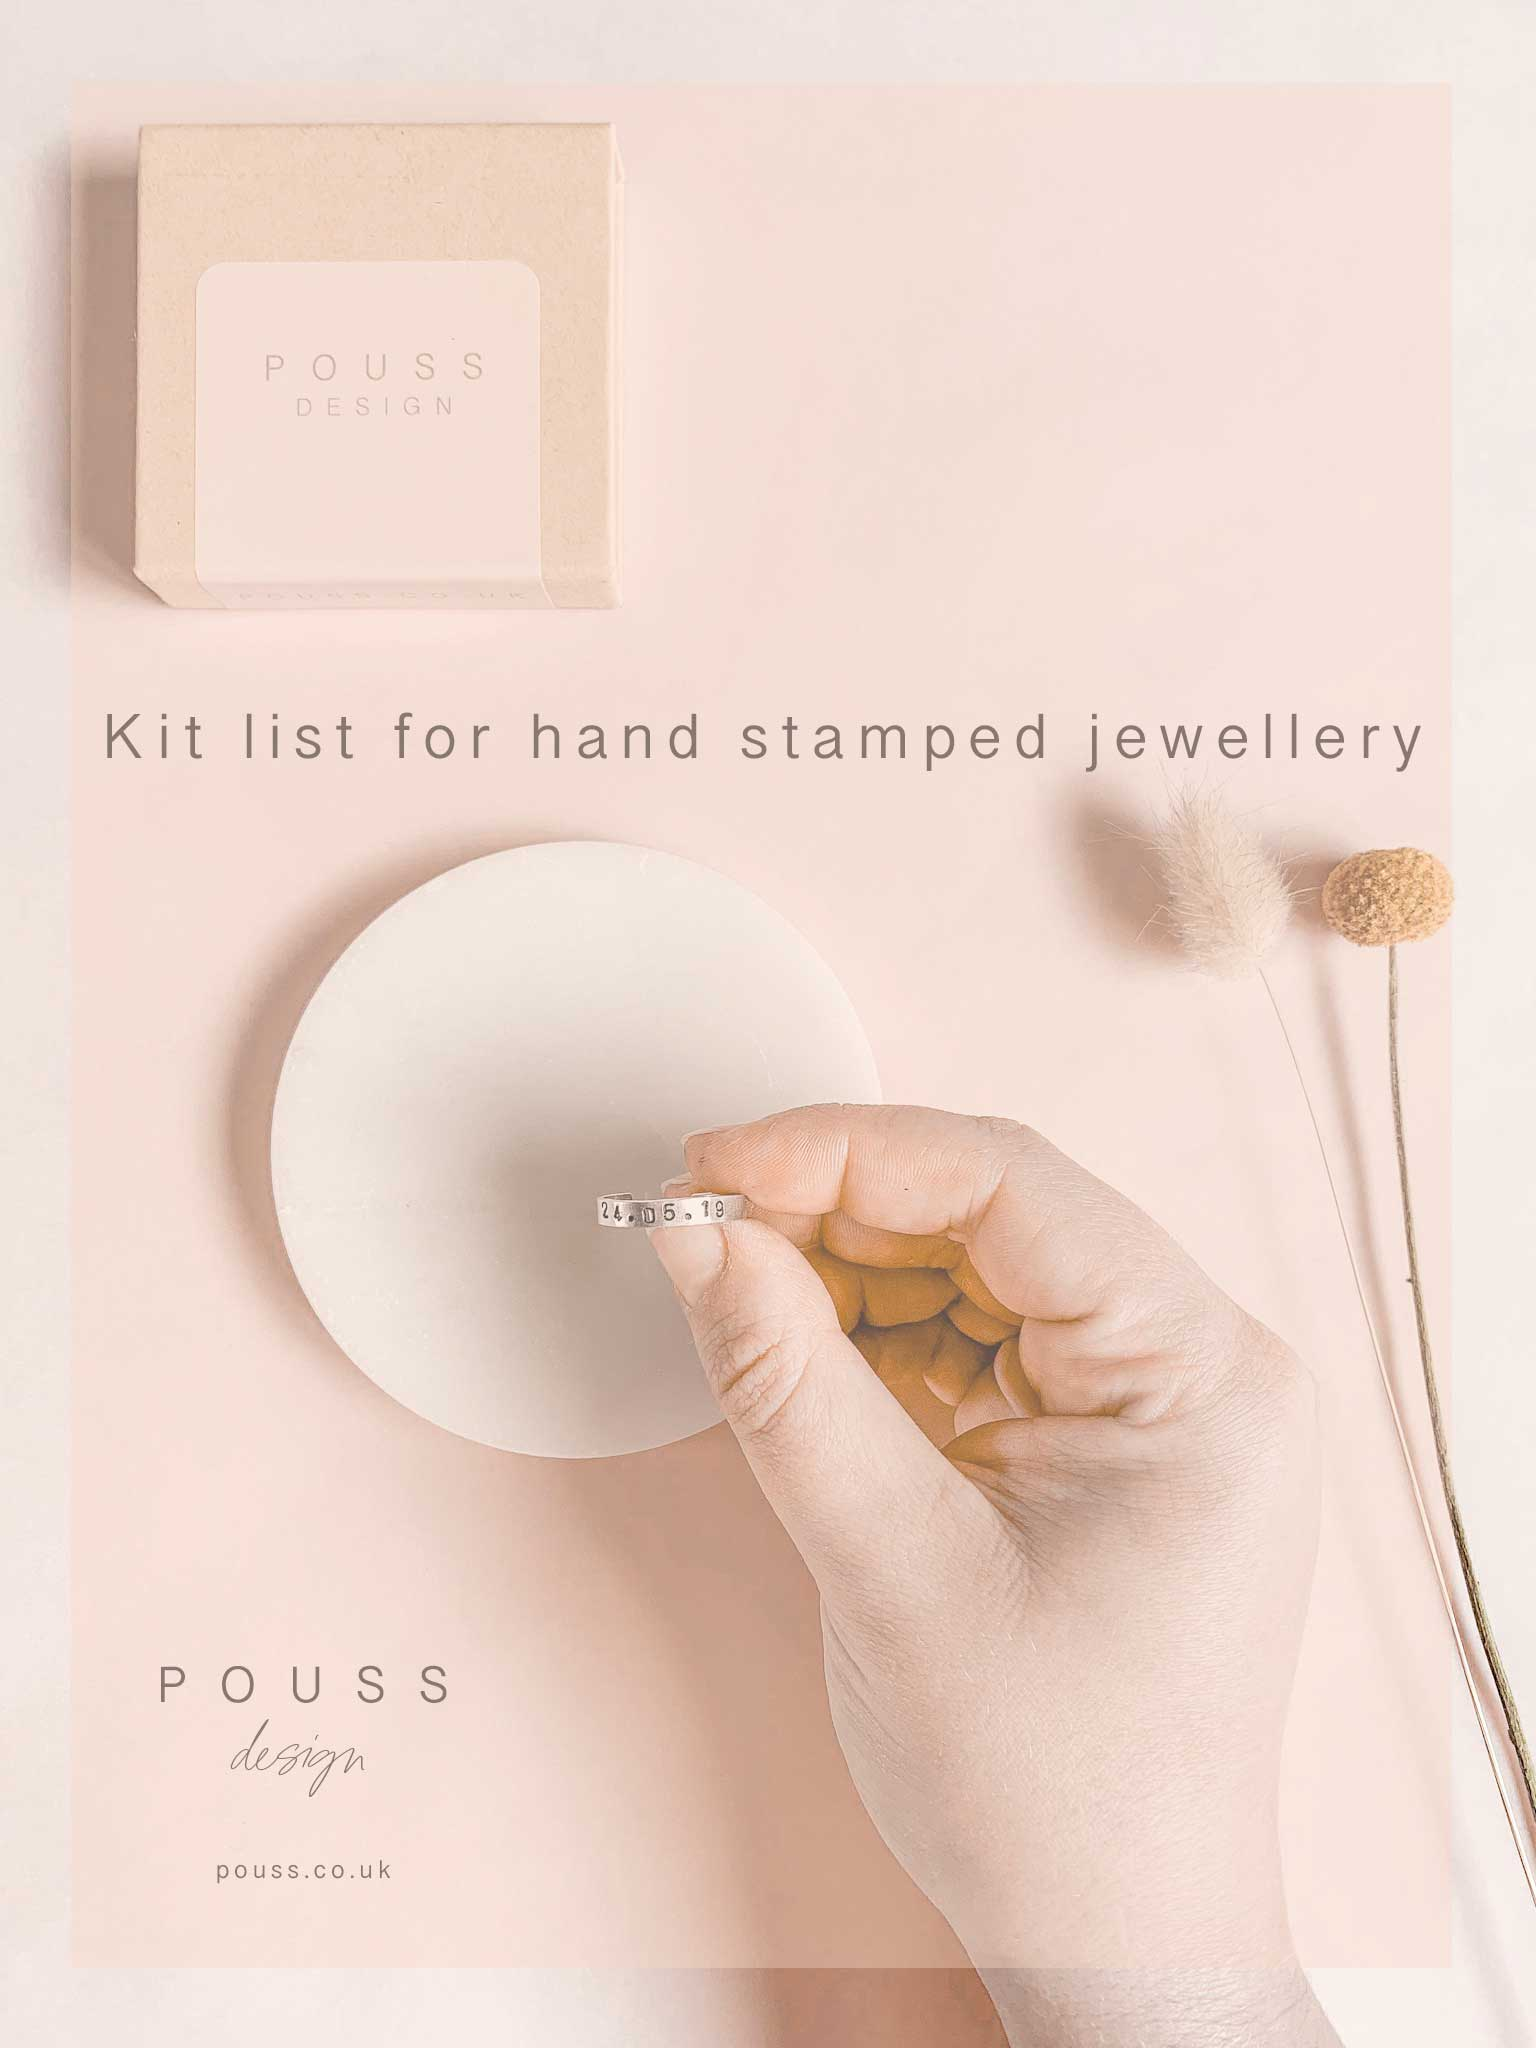 Kit list for hand stamped jewellery by Pouss Design